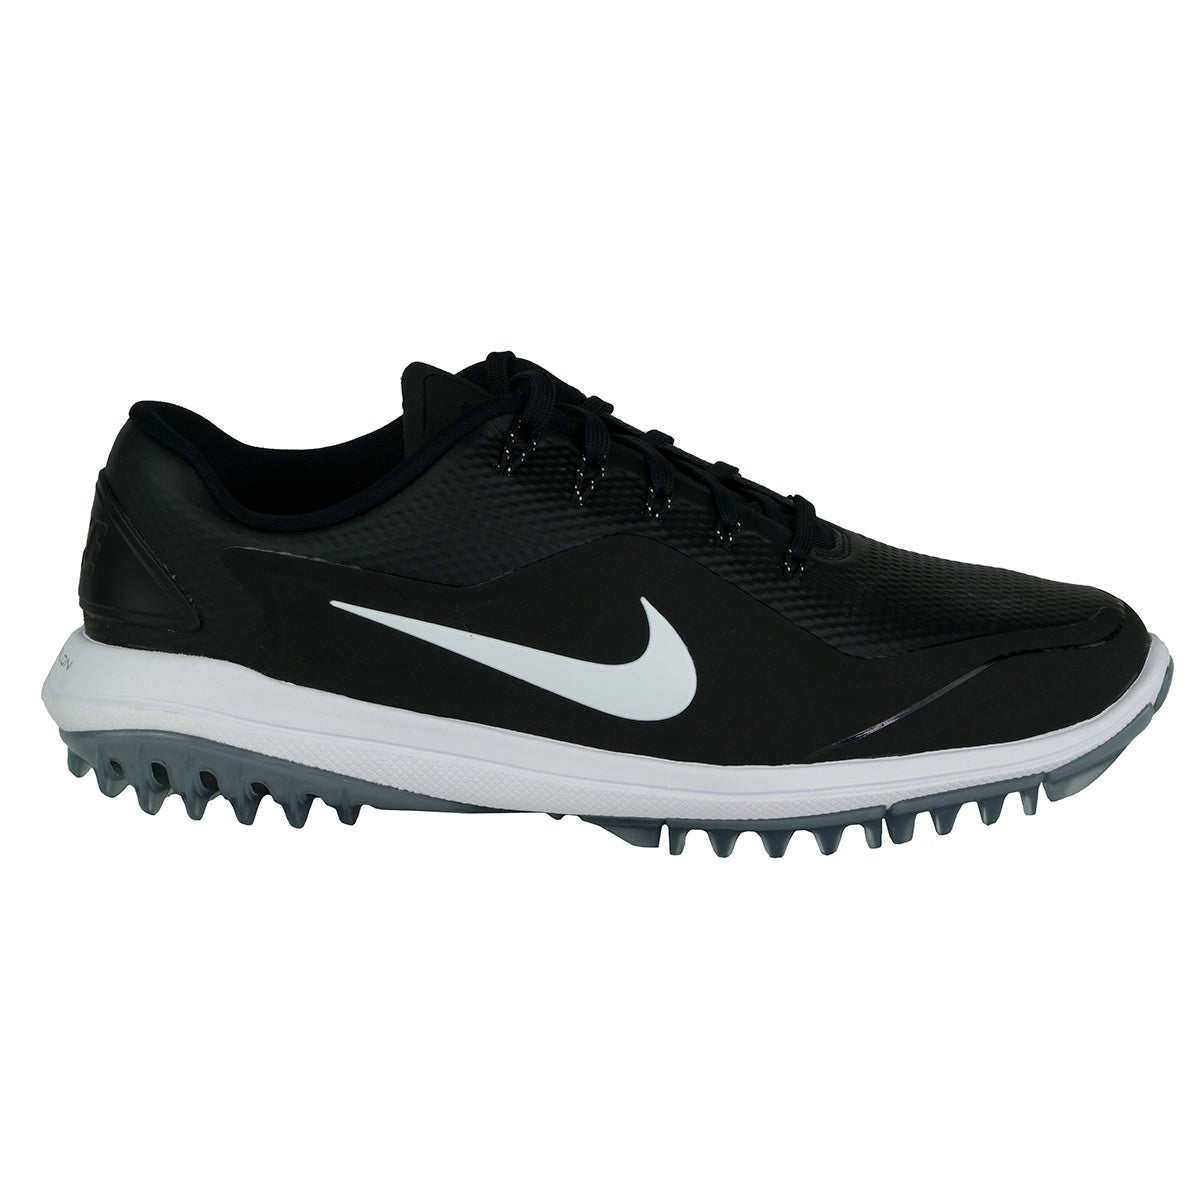 new product ebea1 cdace Shop Nike Men s Lunar Control Vapor 2 Golf Shoes - Free Shipping Today -  Overstock - 26263273